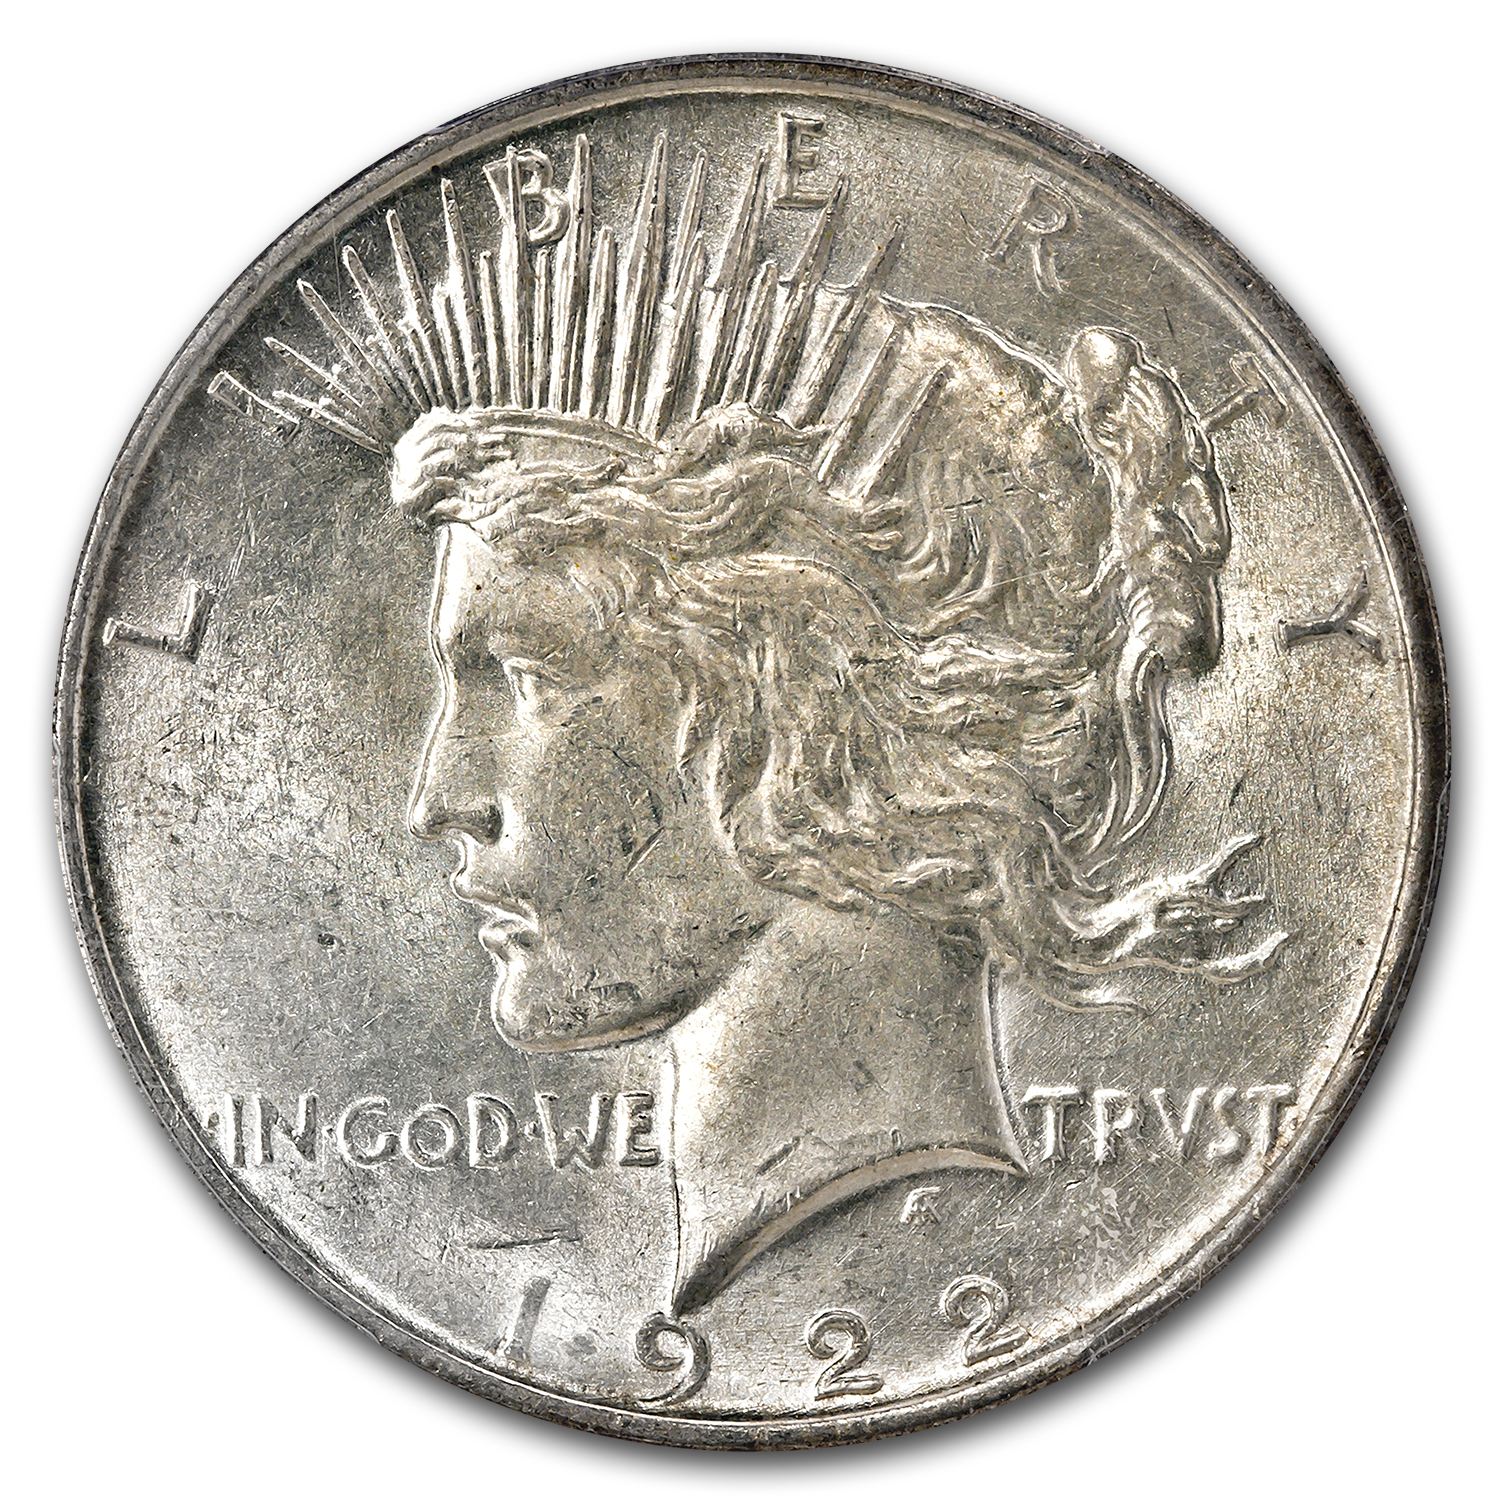 1922-D Peace Dollar AU-58 PCGS (45 Degree CW Rotated Rev)